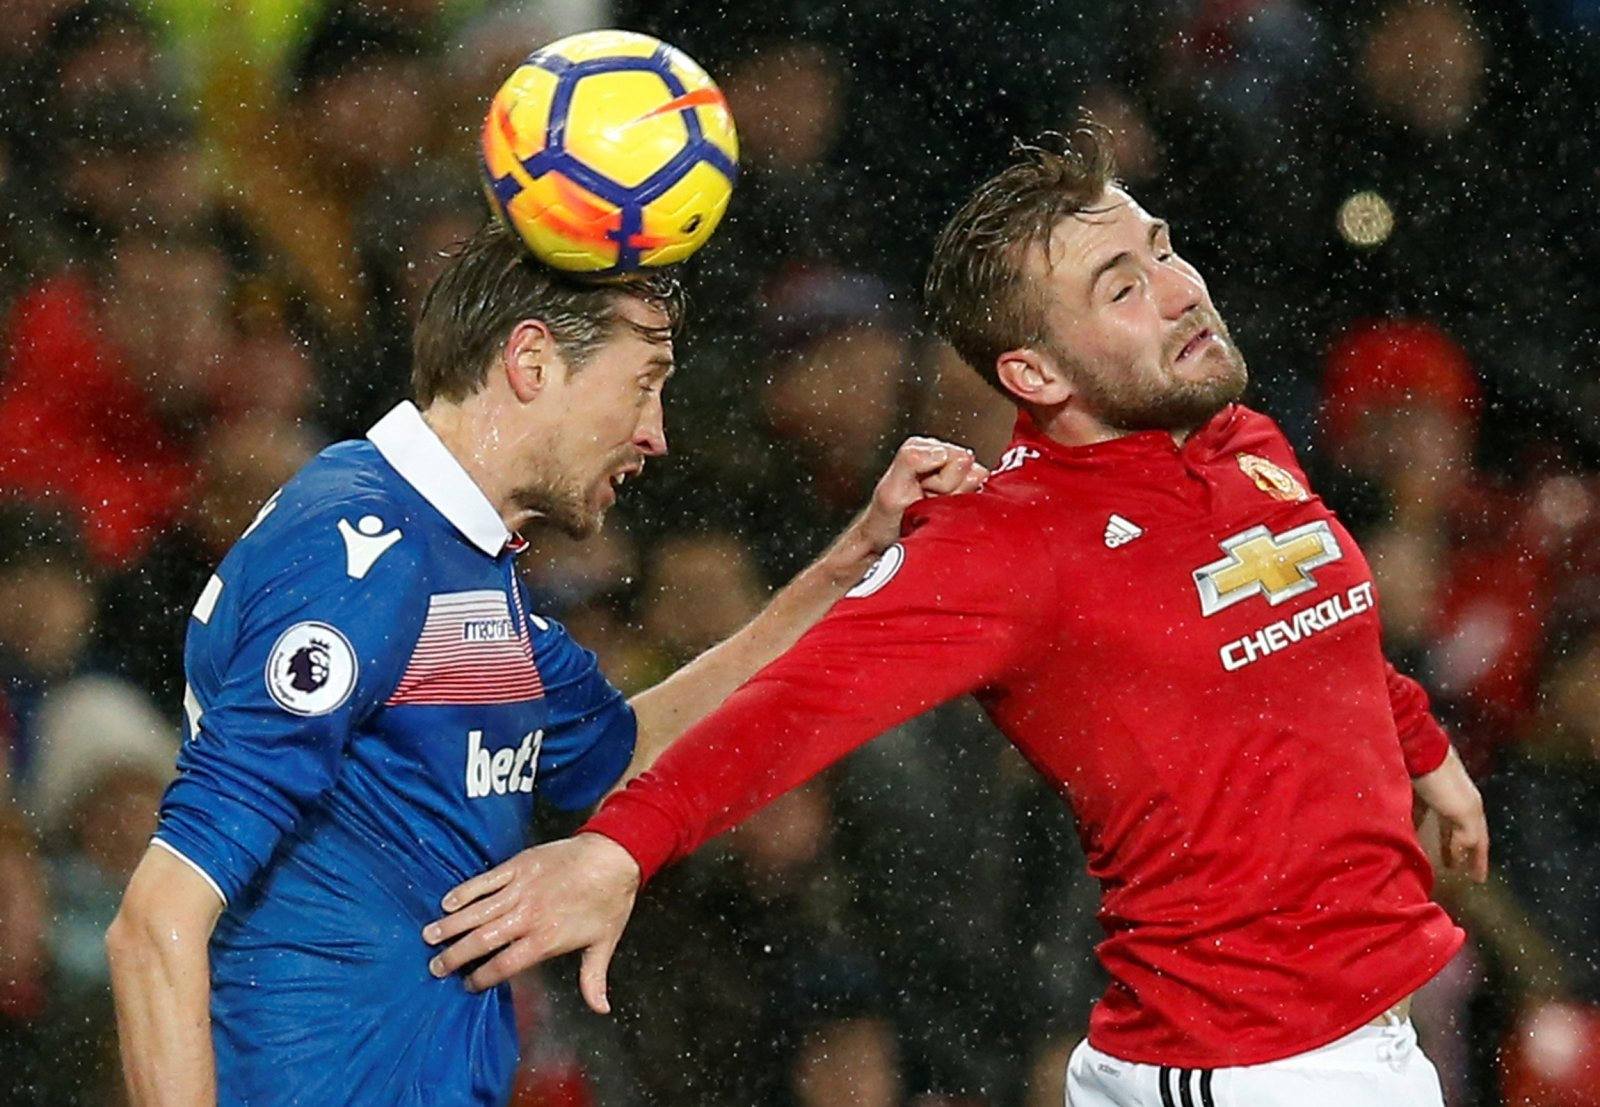 Luke Shaw should give up on his Old Trafford dream